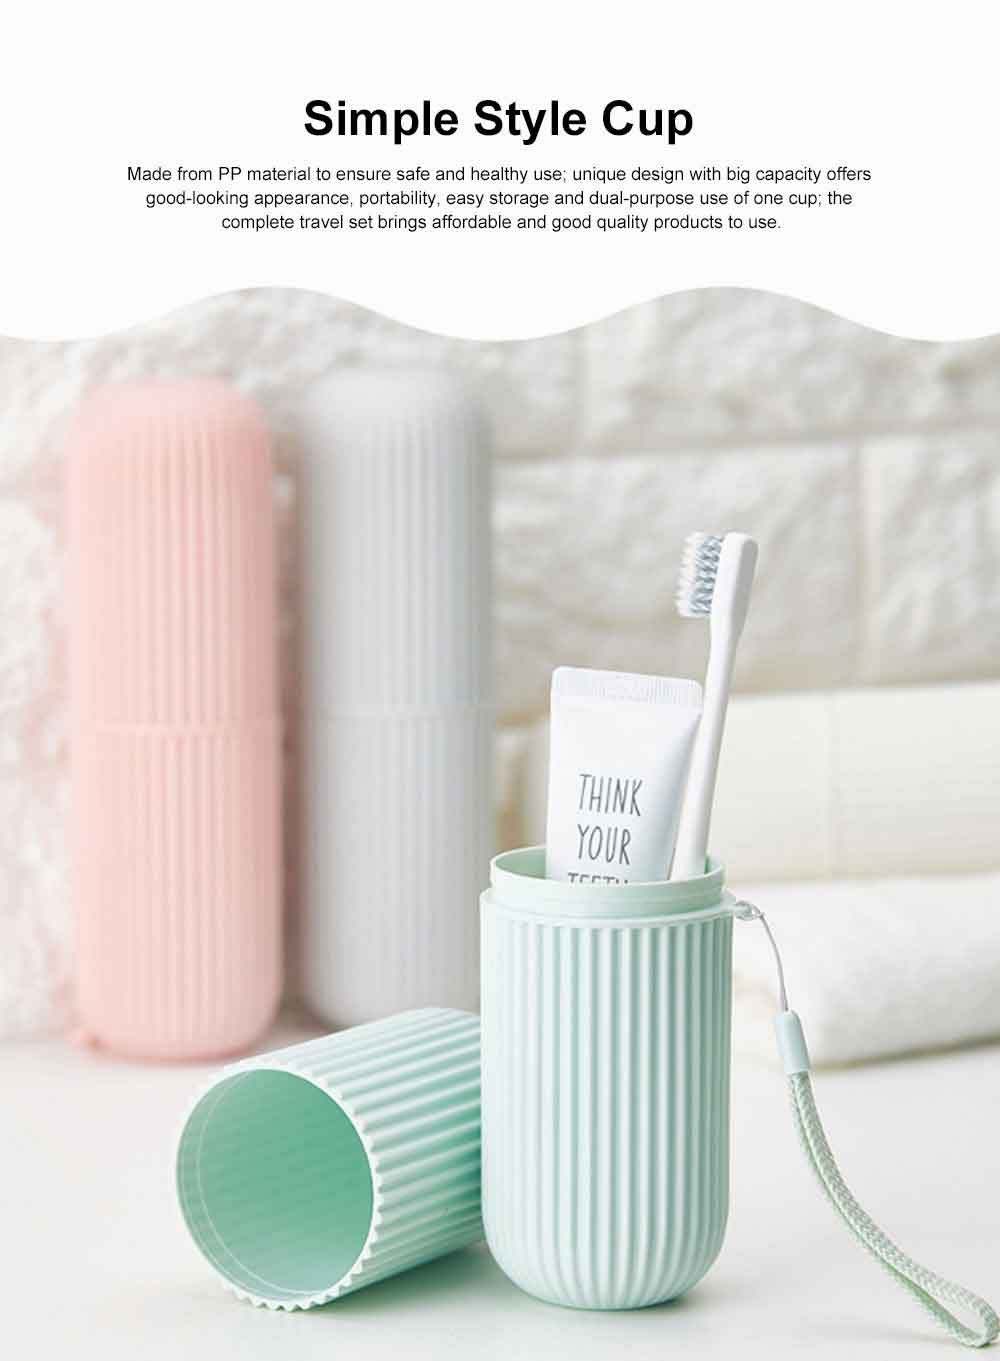 Simple Style Cup for Household or Travel Portable Tooth-brushing Mug Travel Set Couple Cup Household Toothbrush Storage Box 0